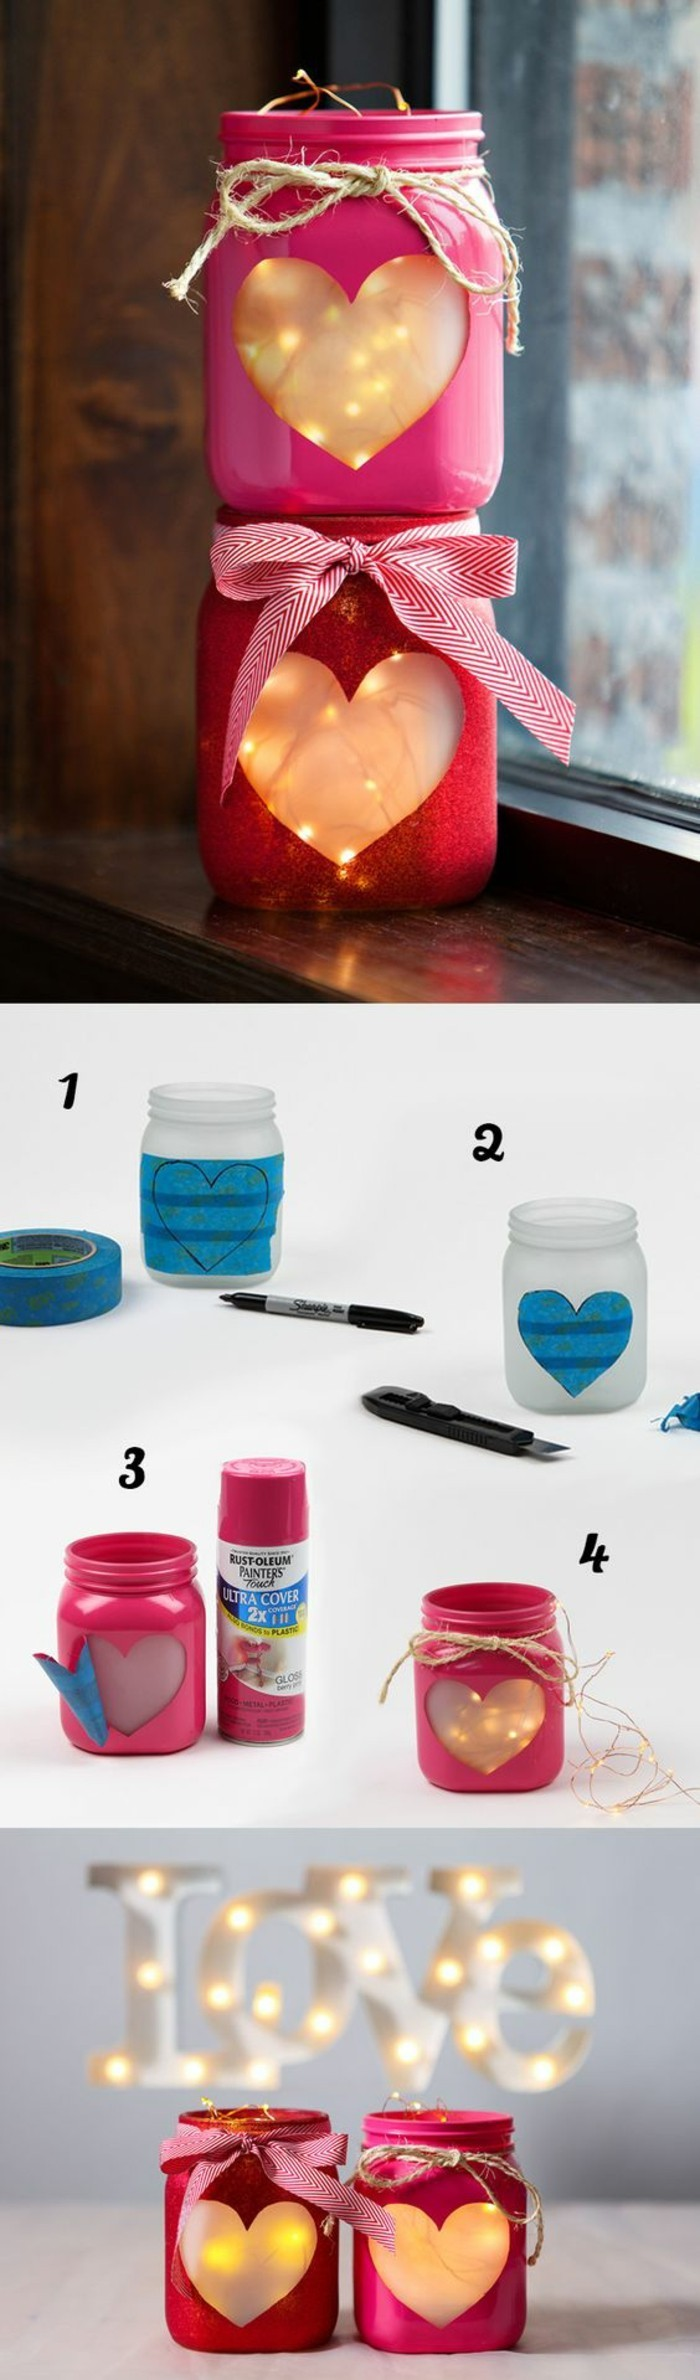 step by step, diy tutorial, candle holders, mason jar, lights and candles inside, creative birthday ideas for boyfriend